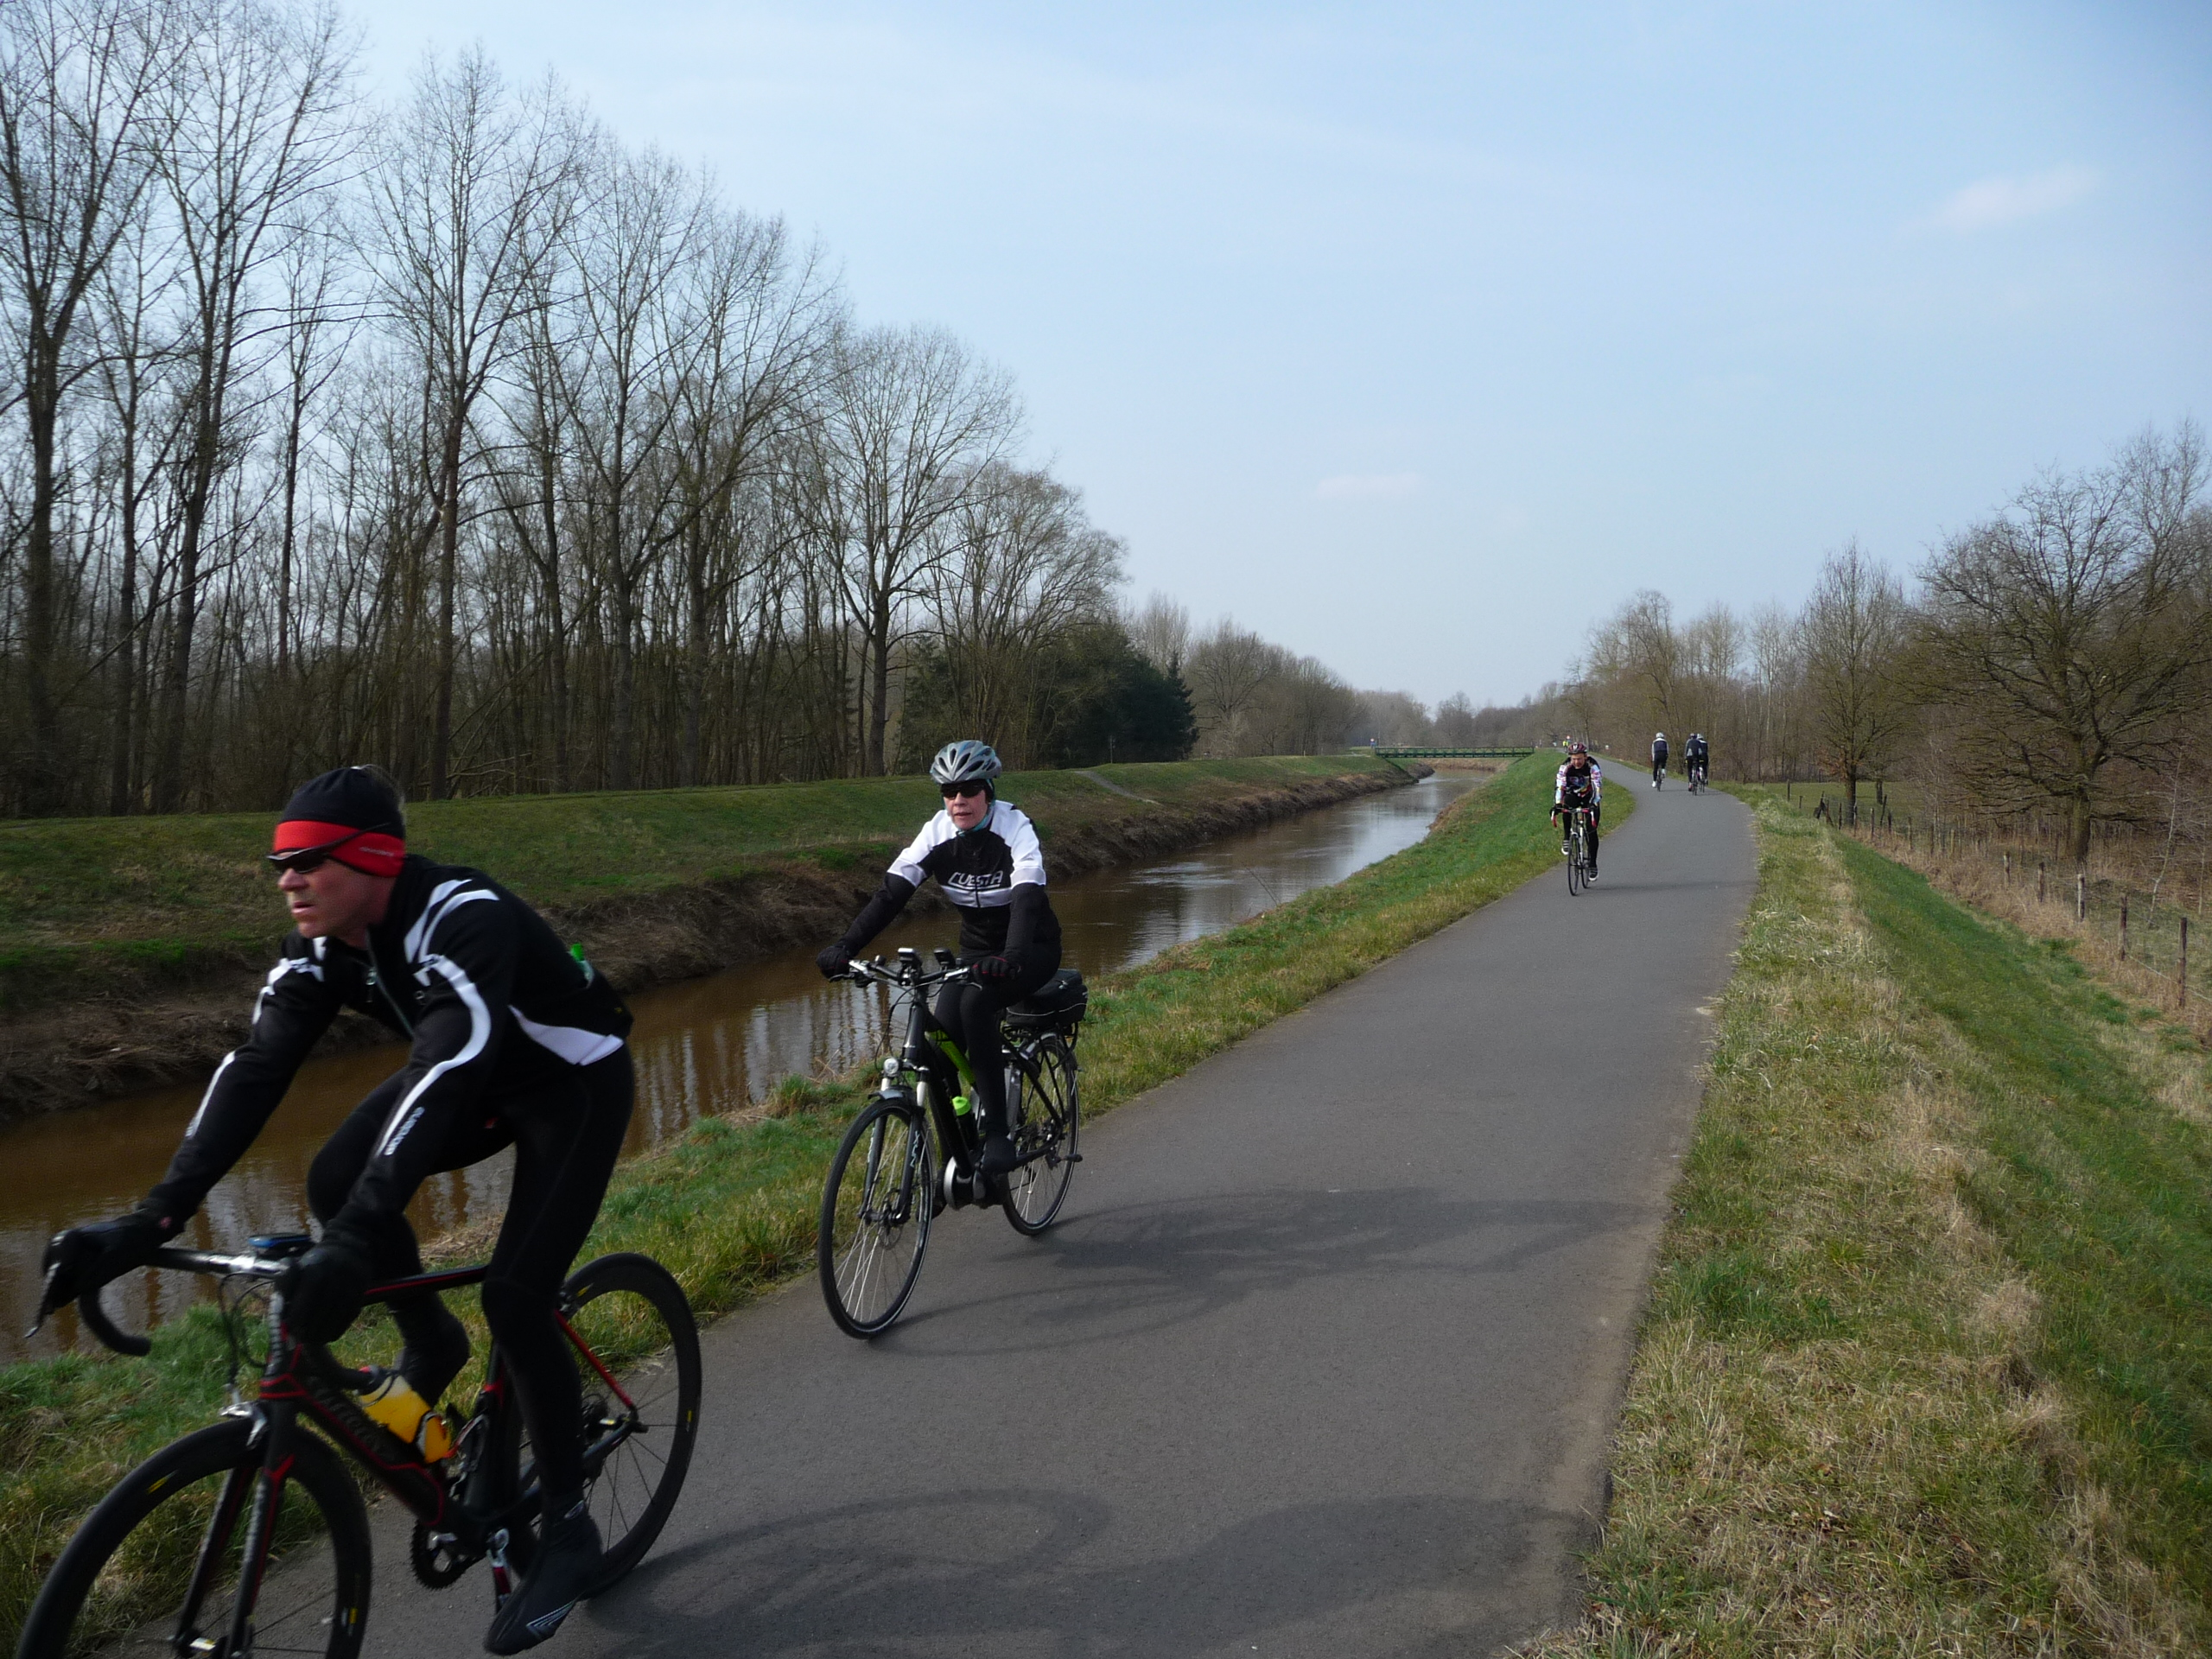 Walking and Cycling along the River Dijle is popular at weekends